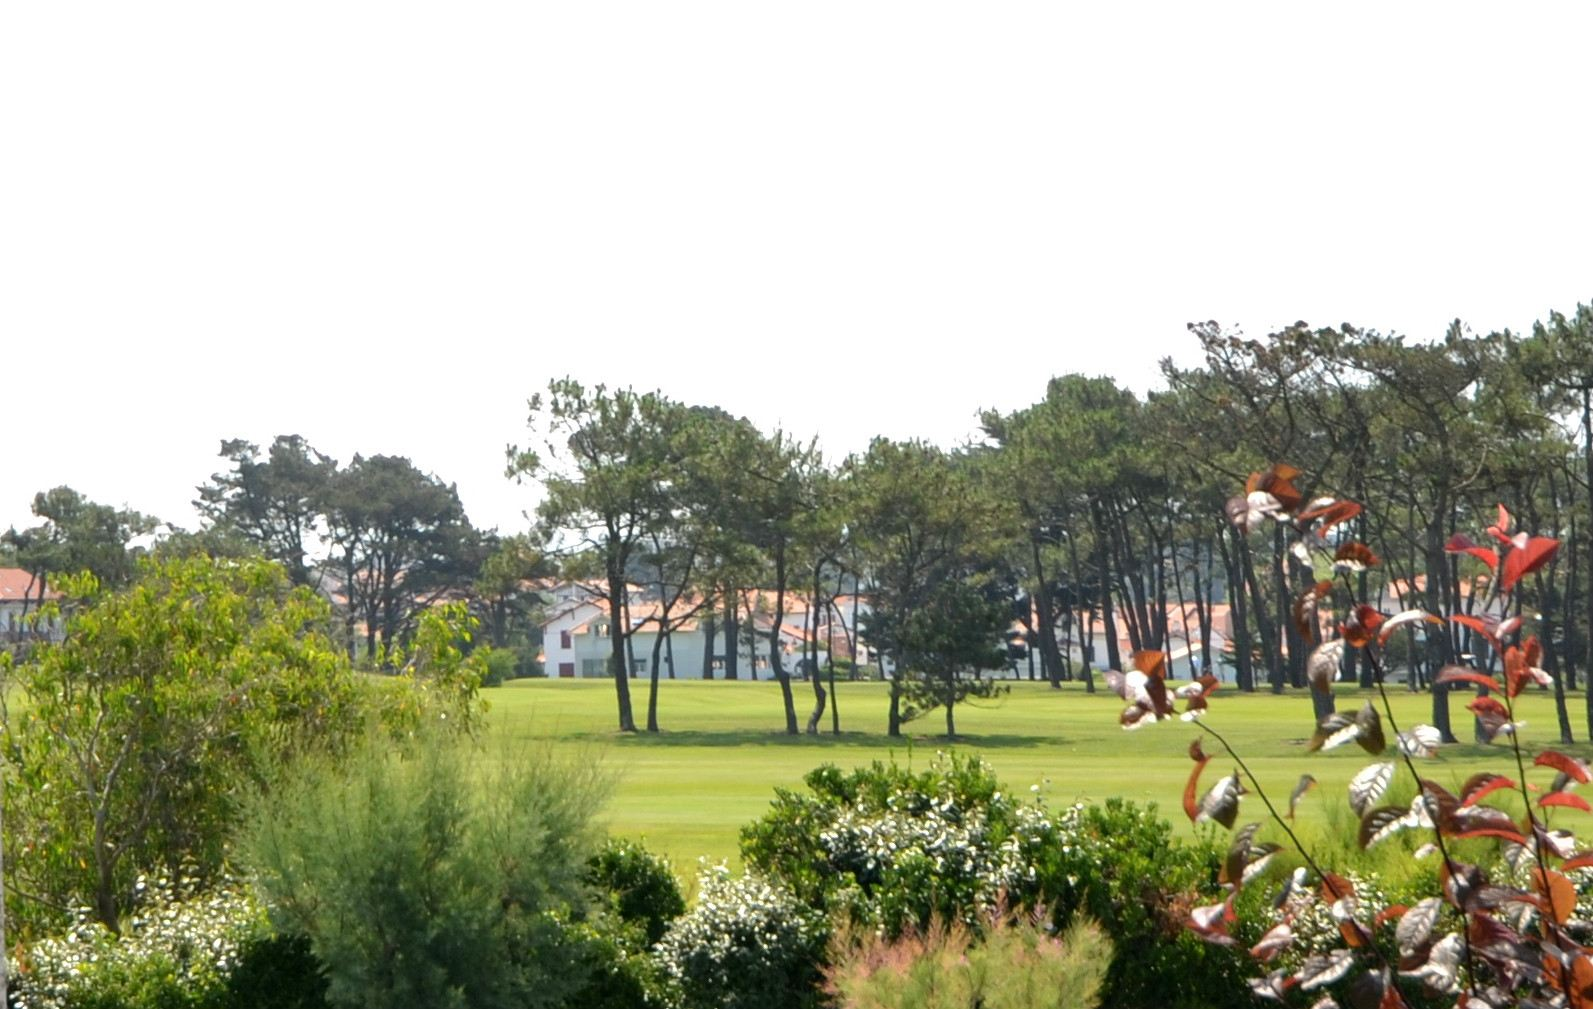 Single Family Home for Sale at BIARRITZ Biarritz, Aquitaine, 64200 France